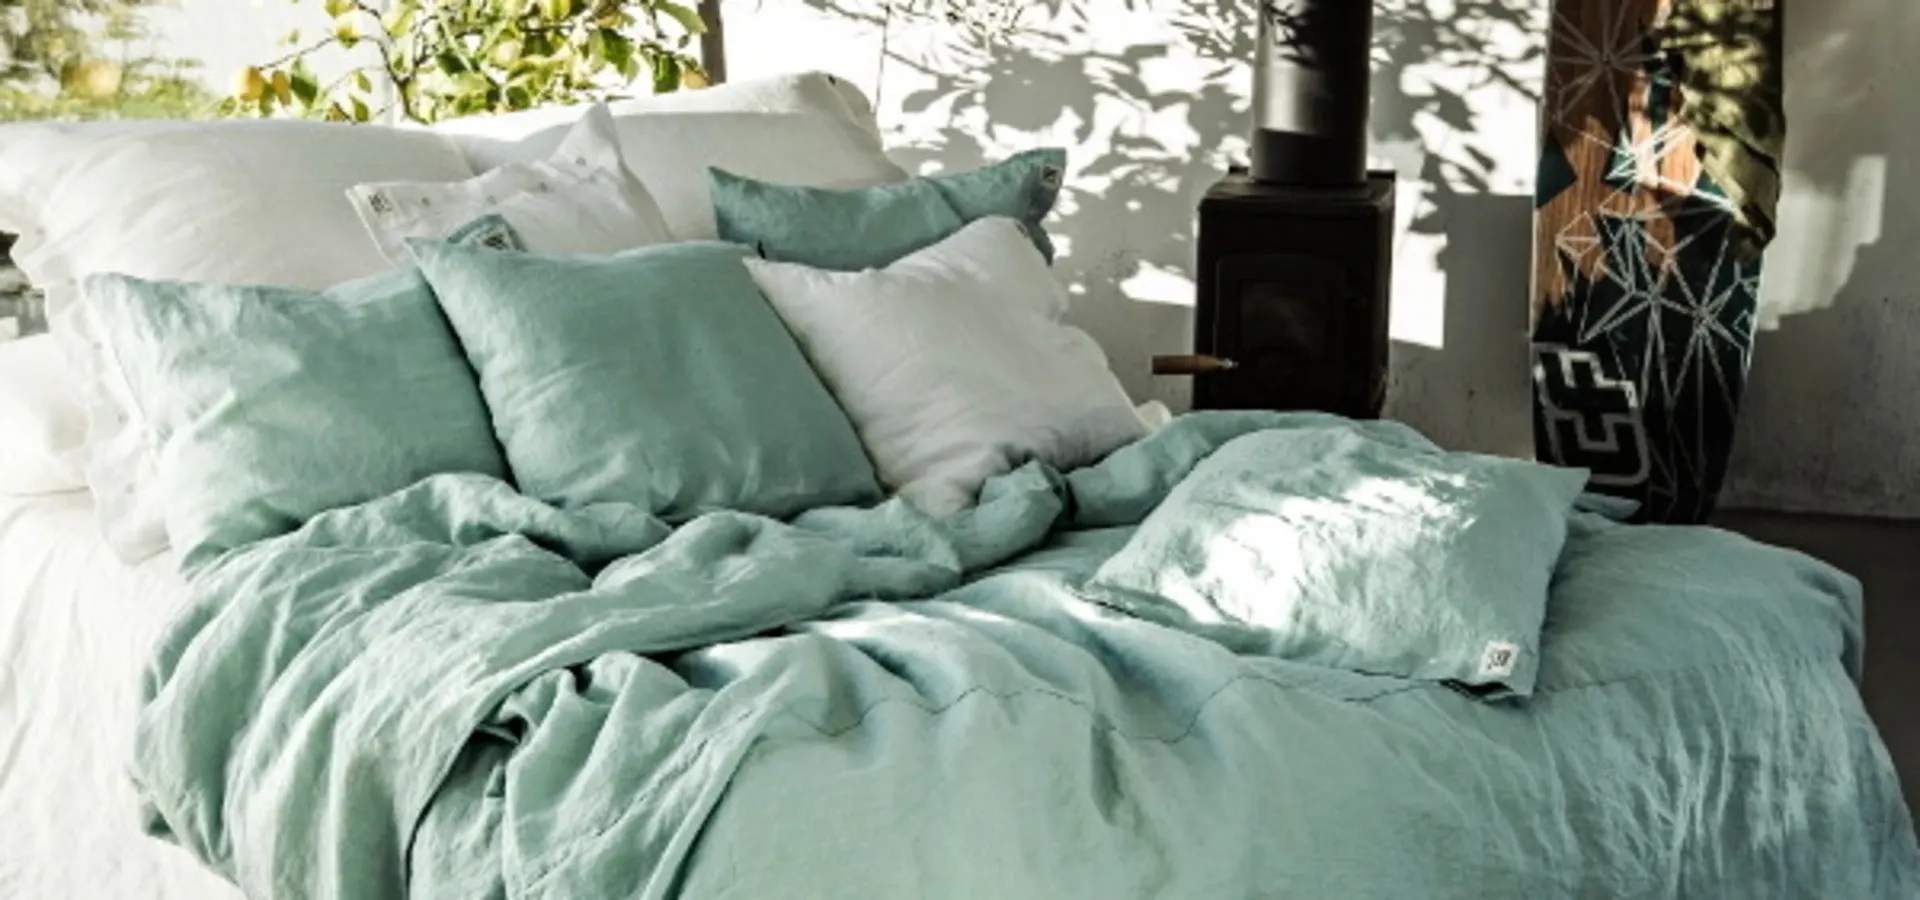 Https Www Homify De Projekte 490294 Lovely Linen Bettwaesche Misty Von Kardelen